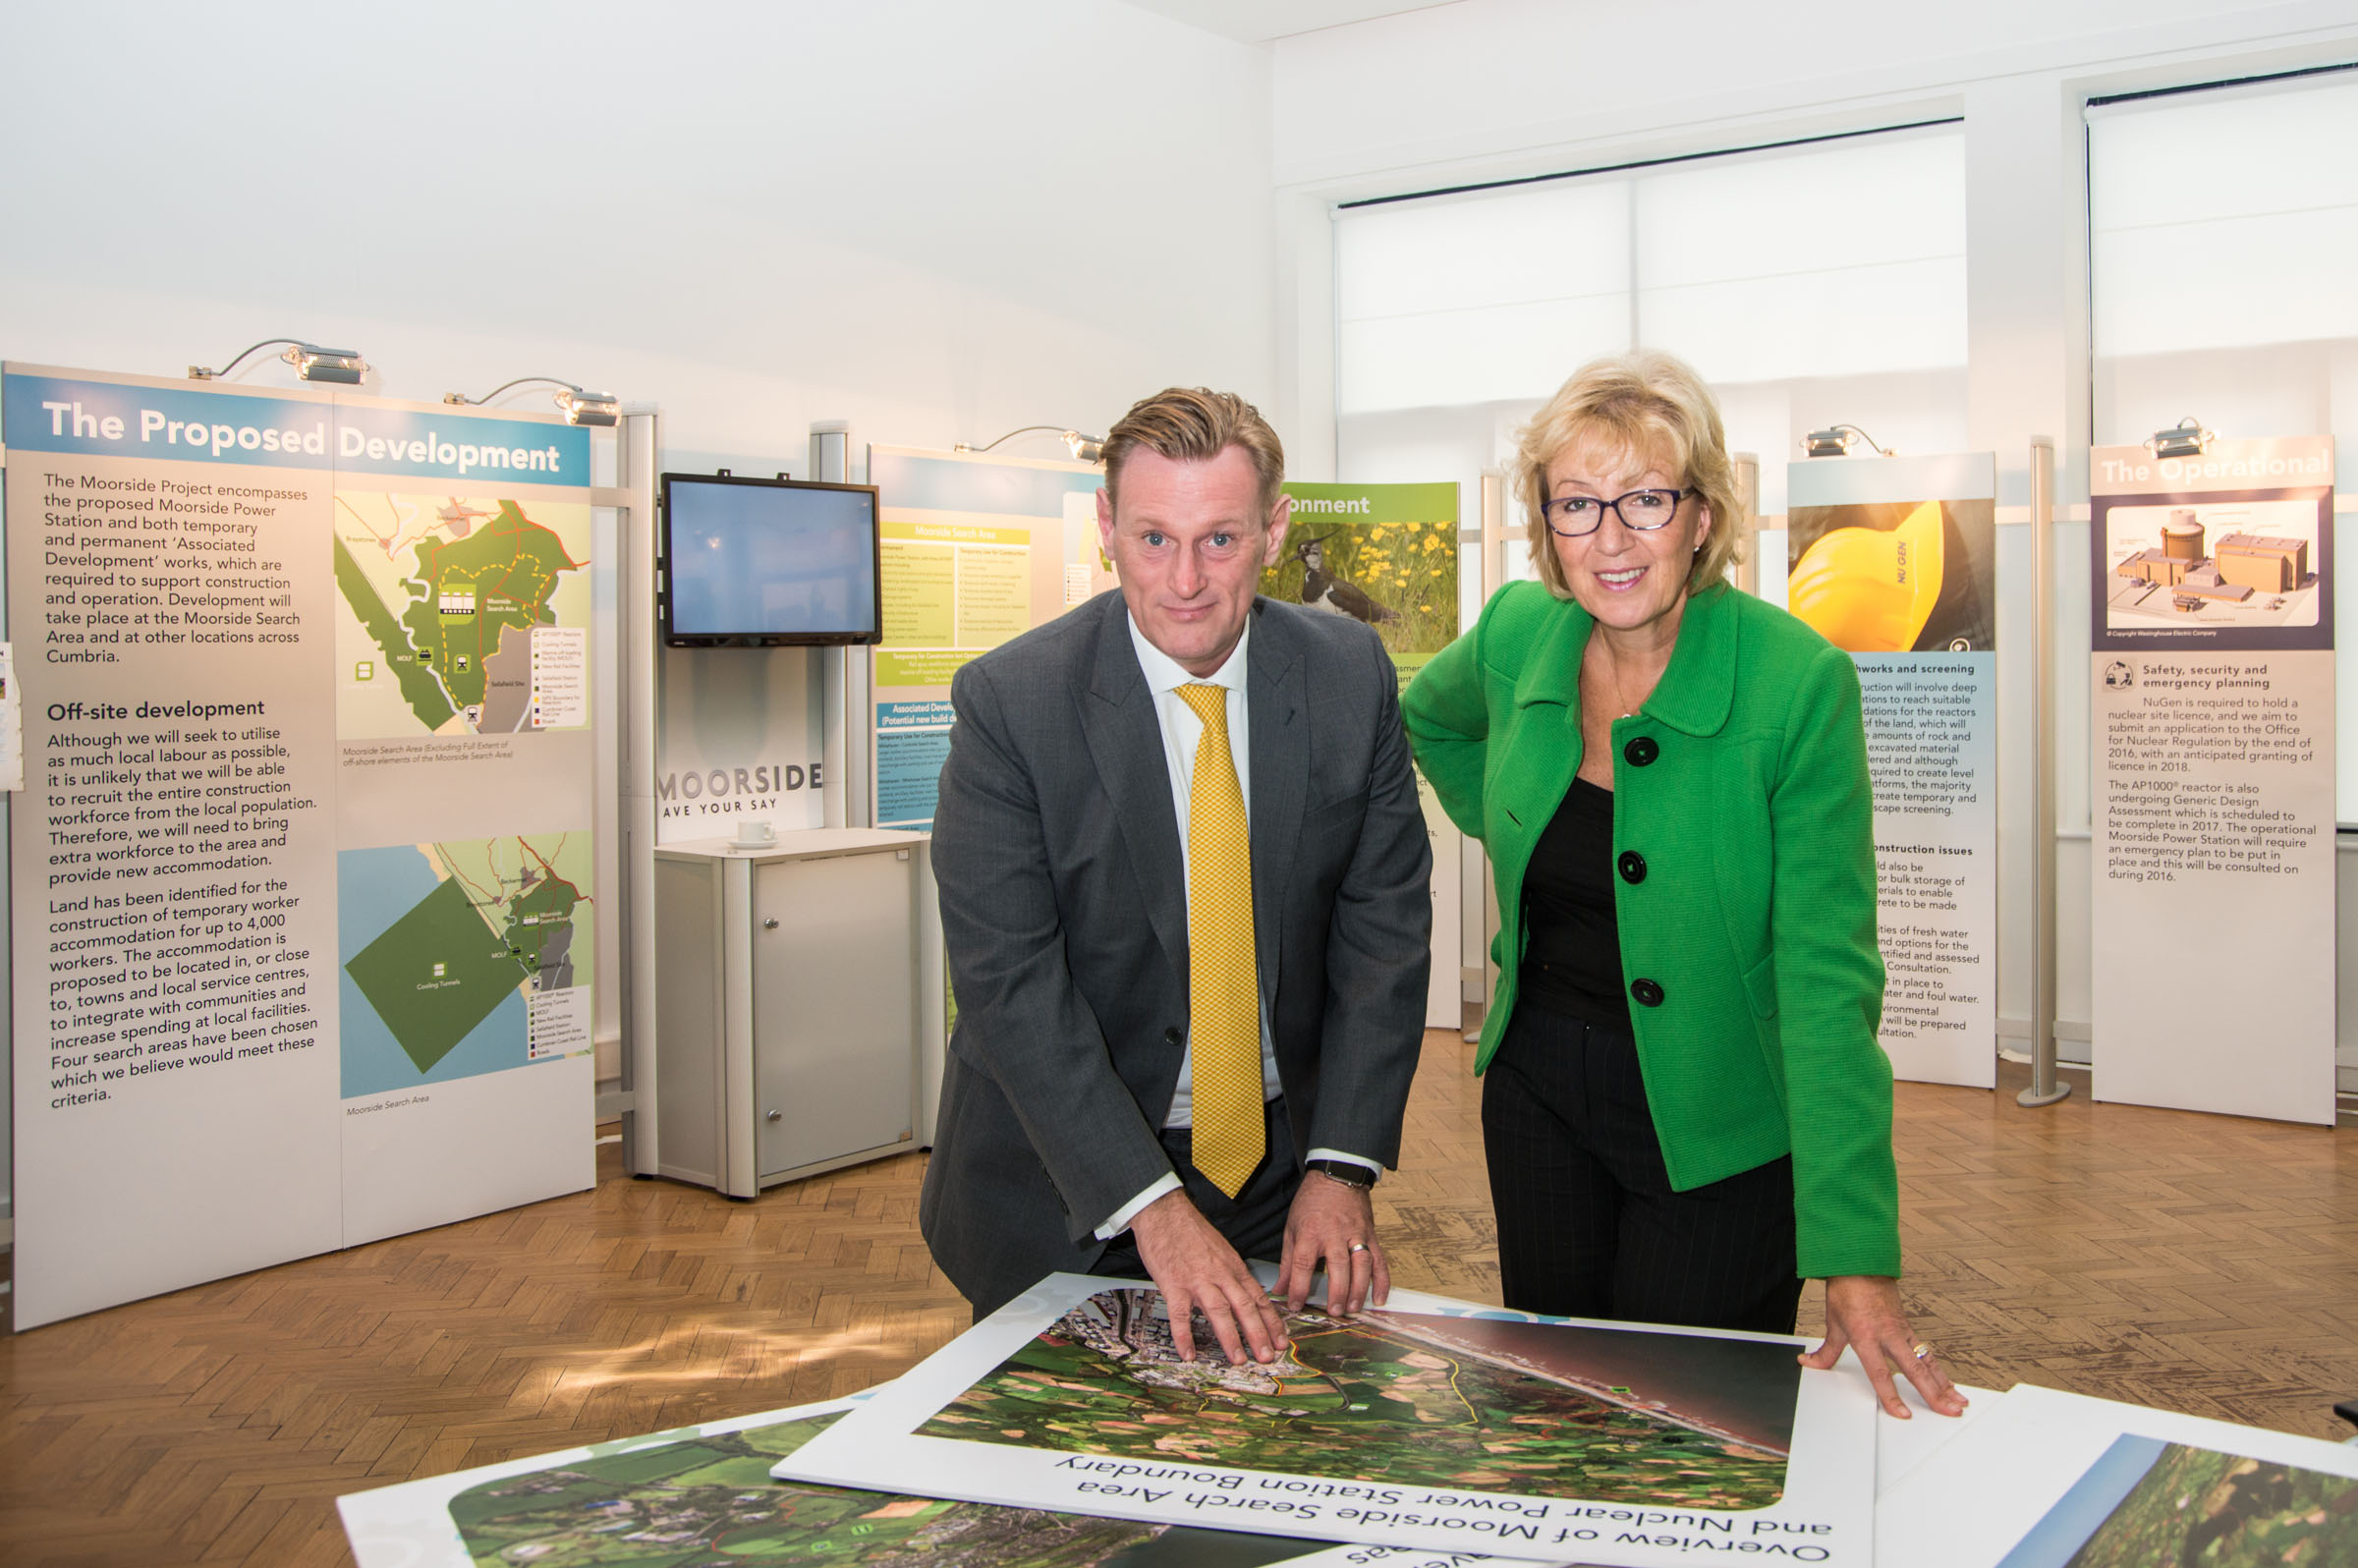 20150903 Leadsom at NuGen Whitehaven [01].jpg